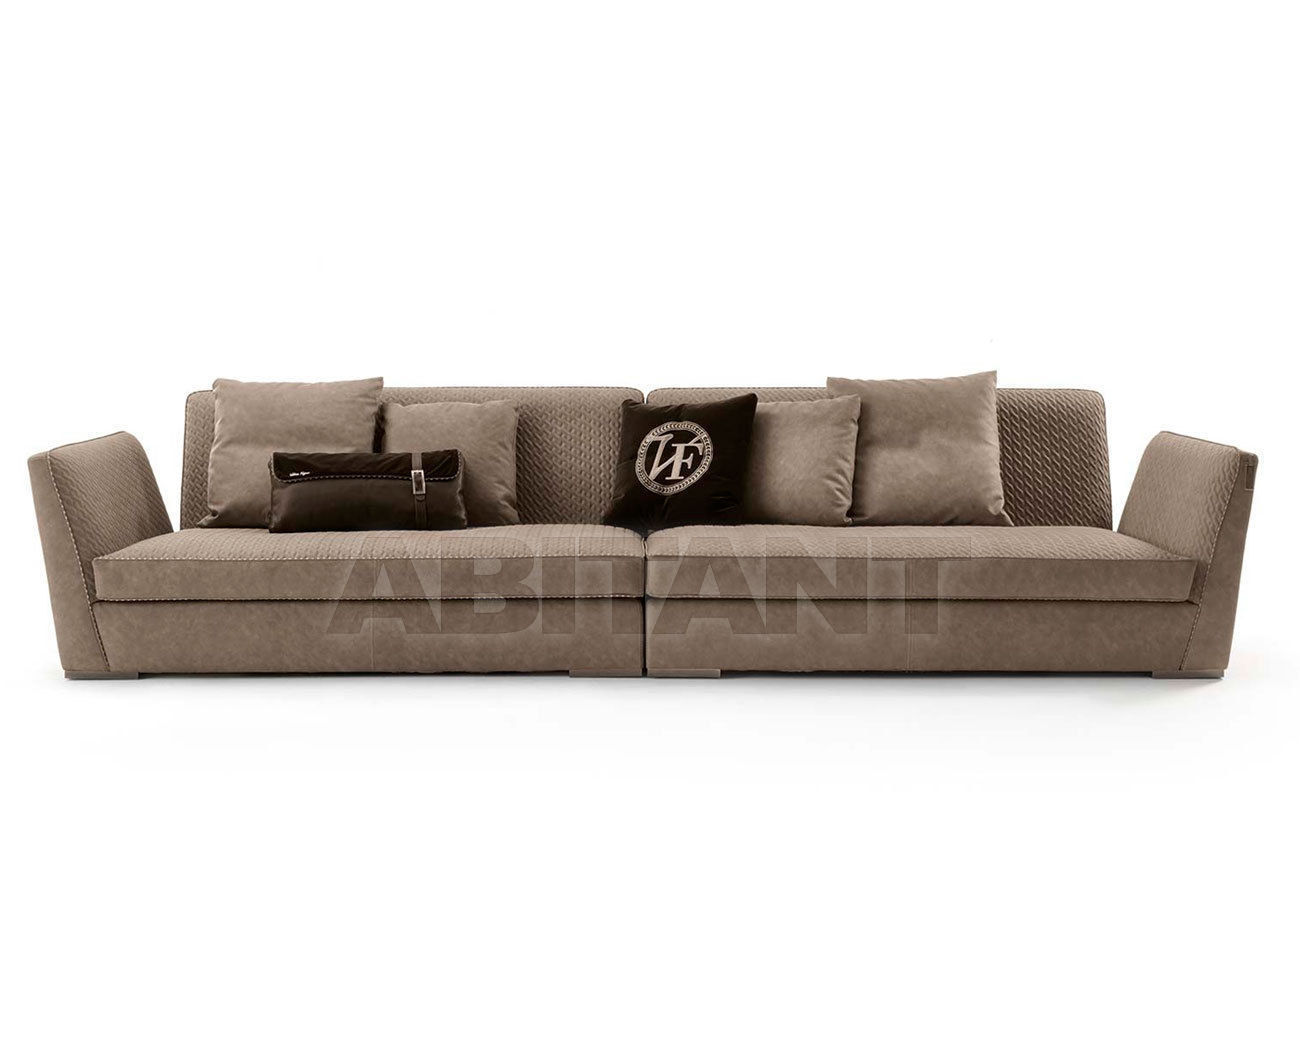 Sofa Visconti Light beige Vittoria Frigerio by Frigerio Poltrone e ...